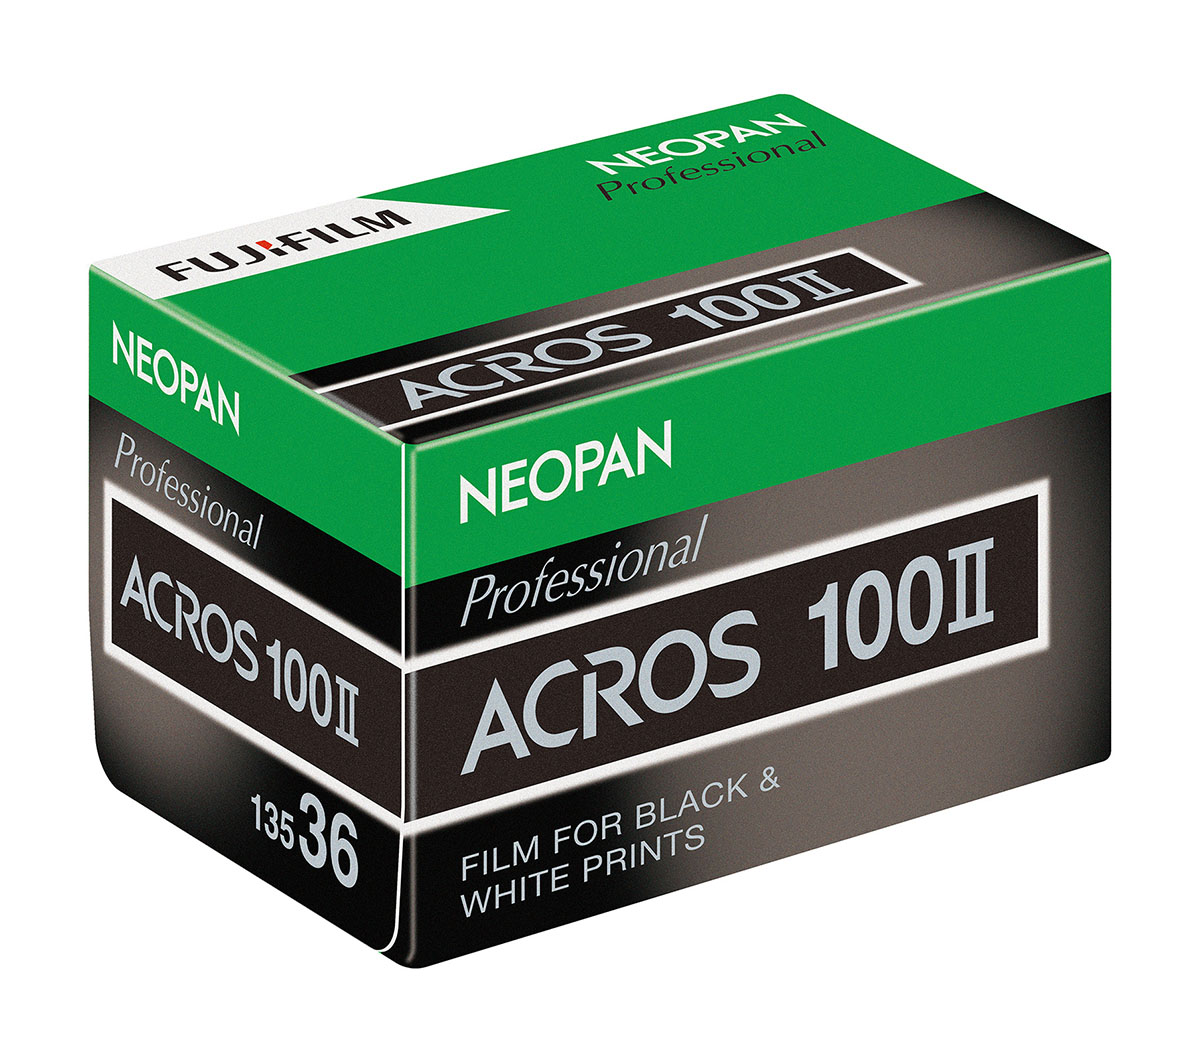 FujiFilm Japan Resurrects Neopan with ACROS 100II